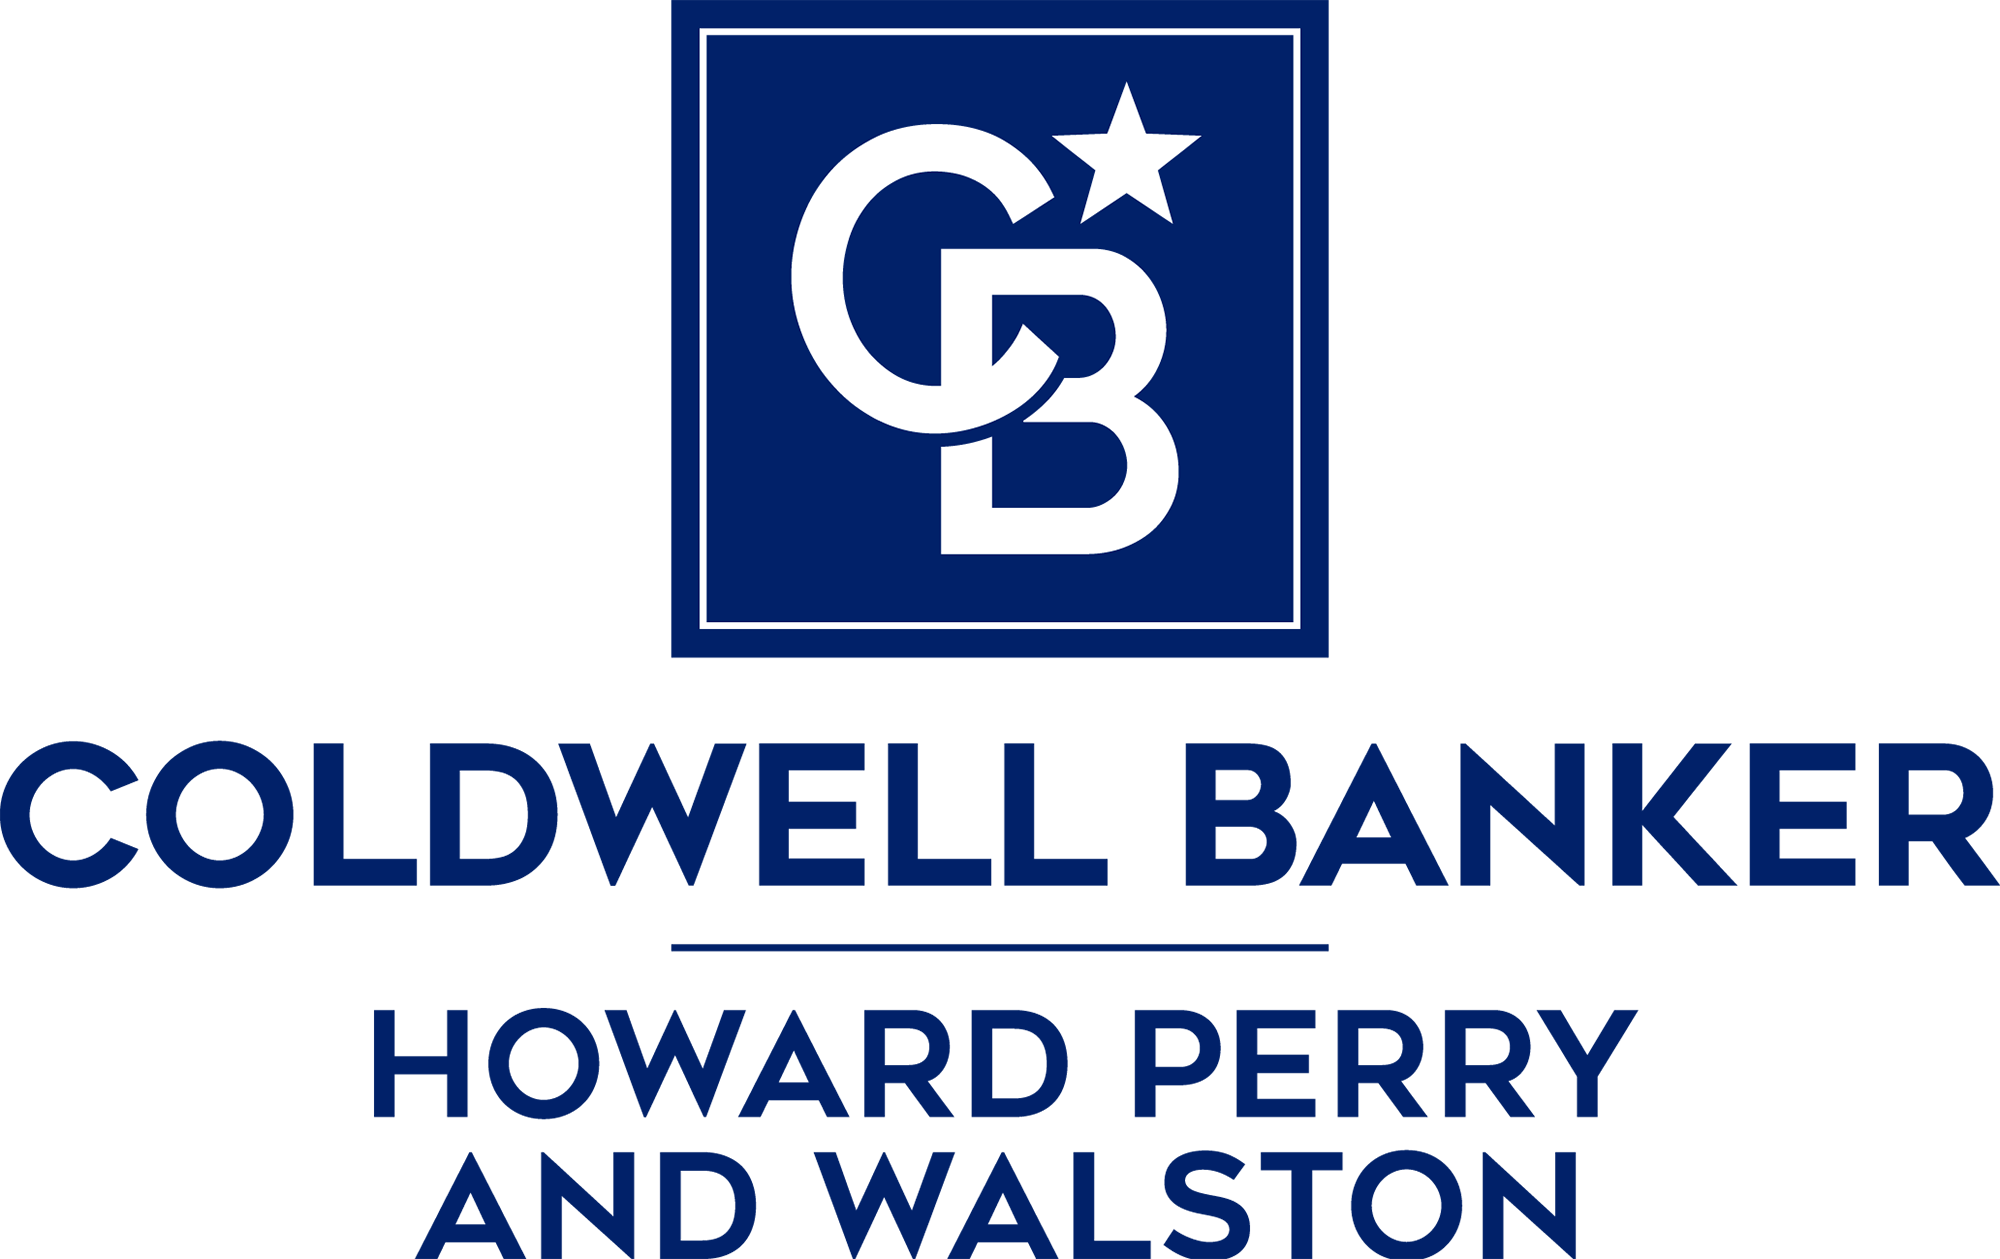 Coldwell Banker Howard Perry and Walston Names Matt Horton Chief Marketing Officer